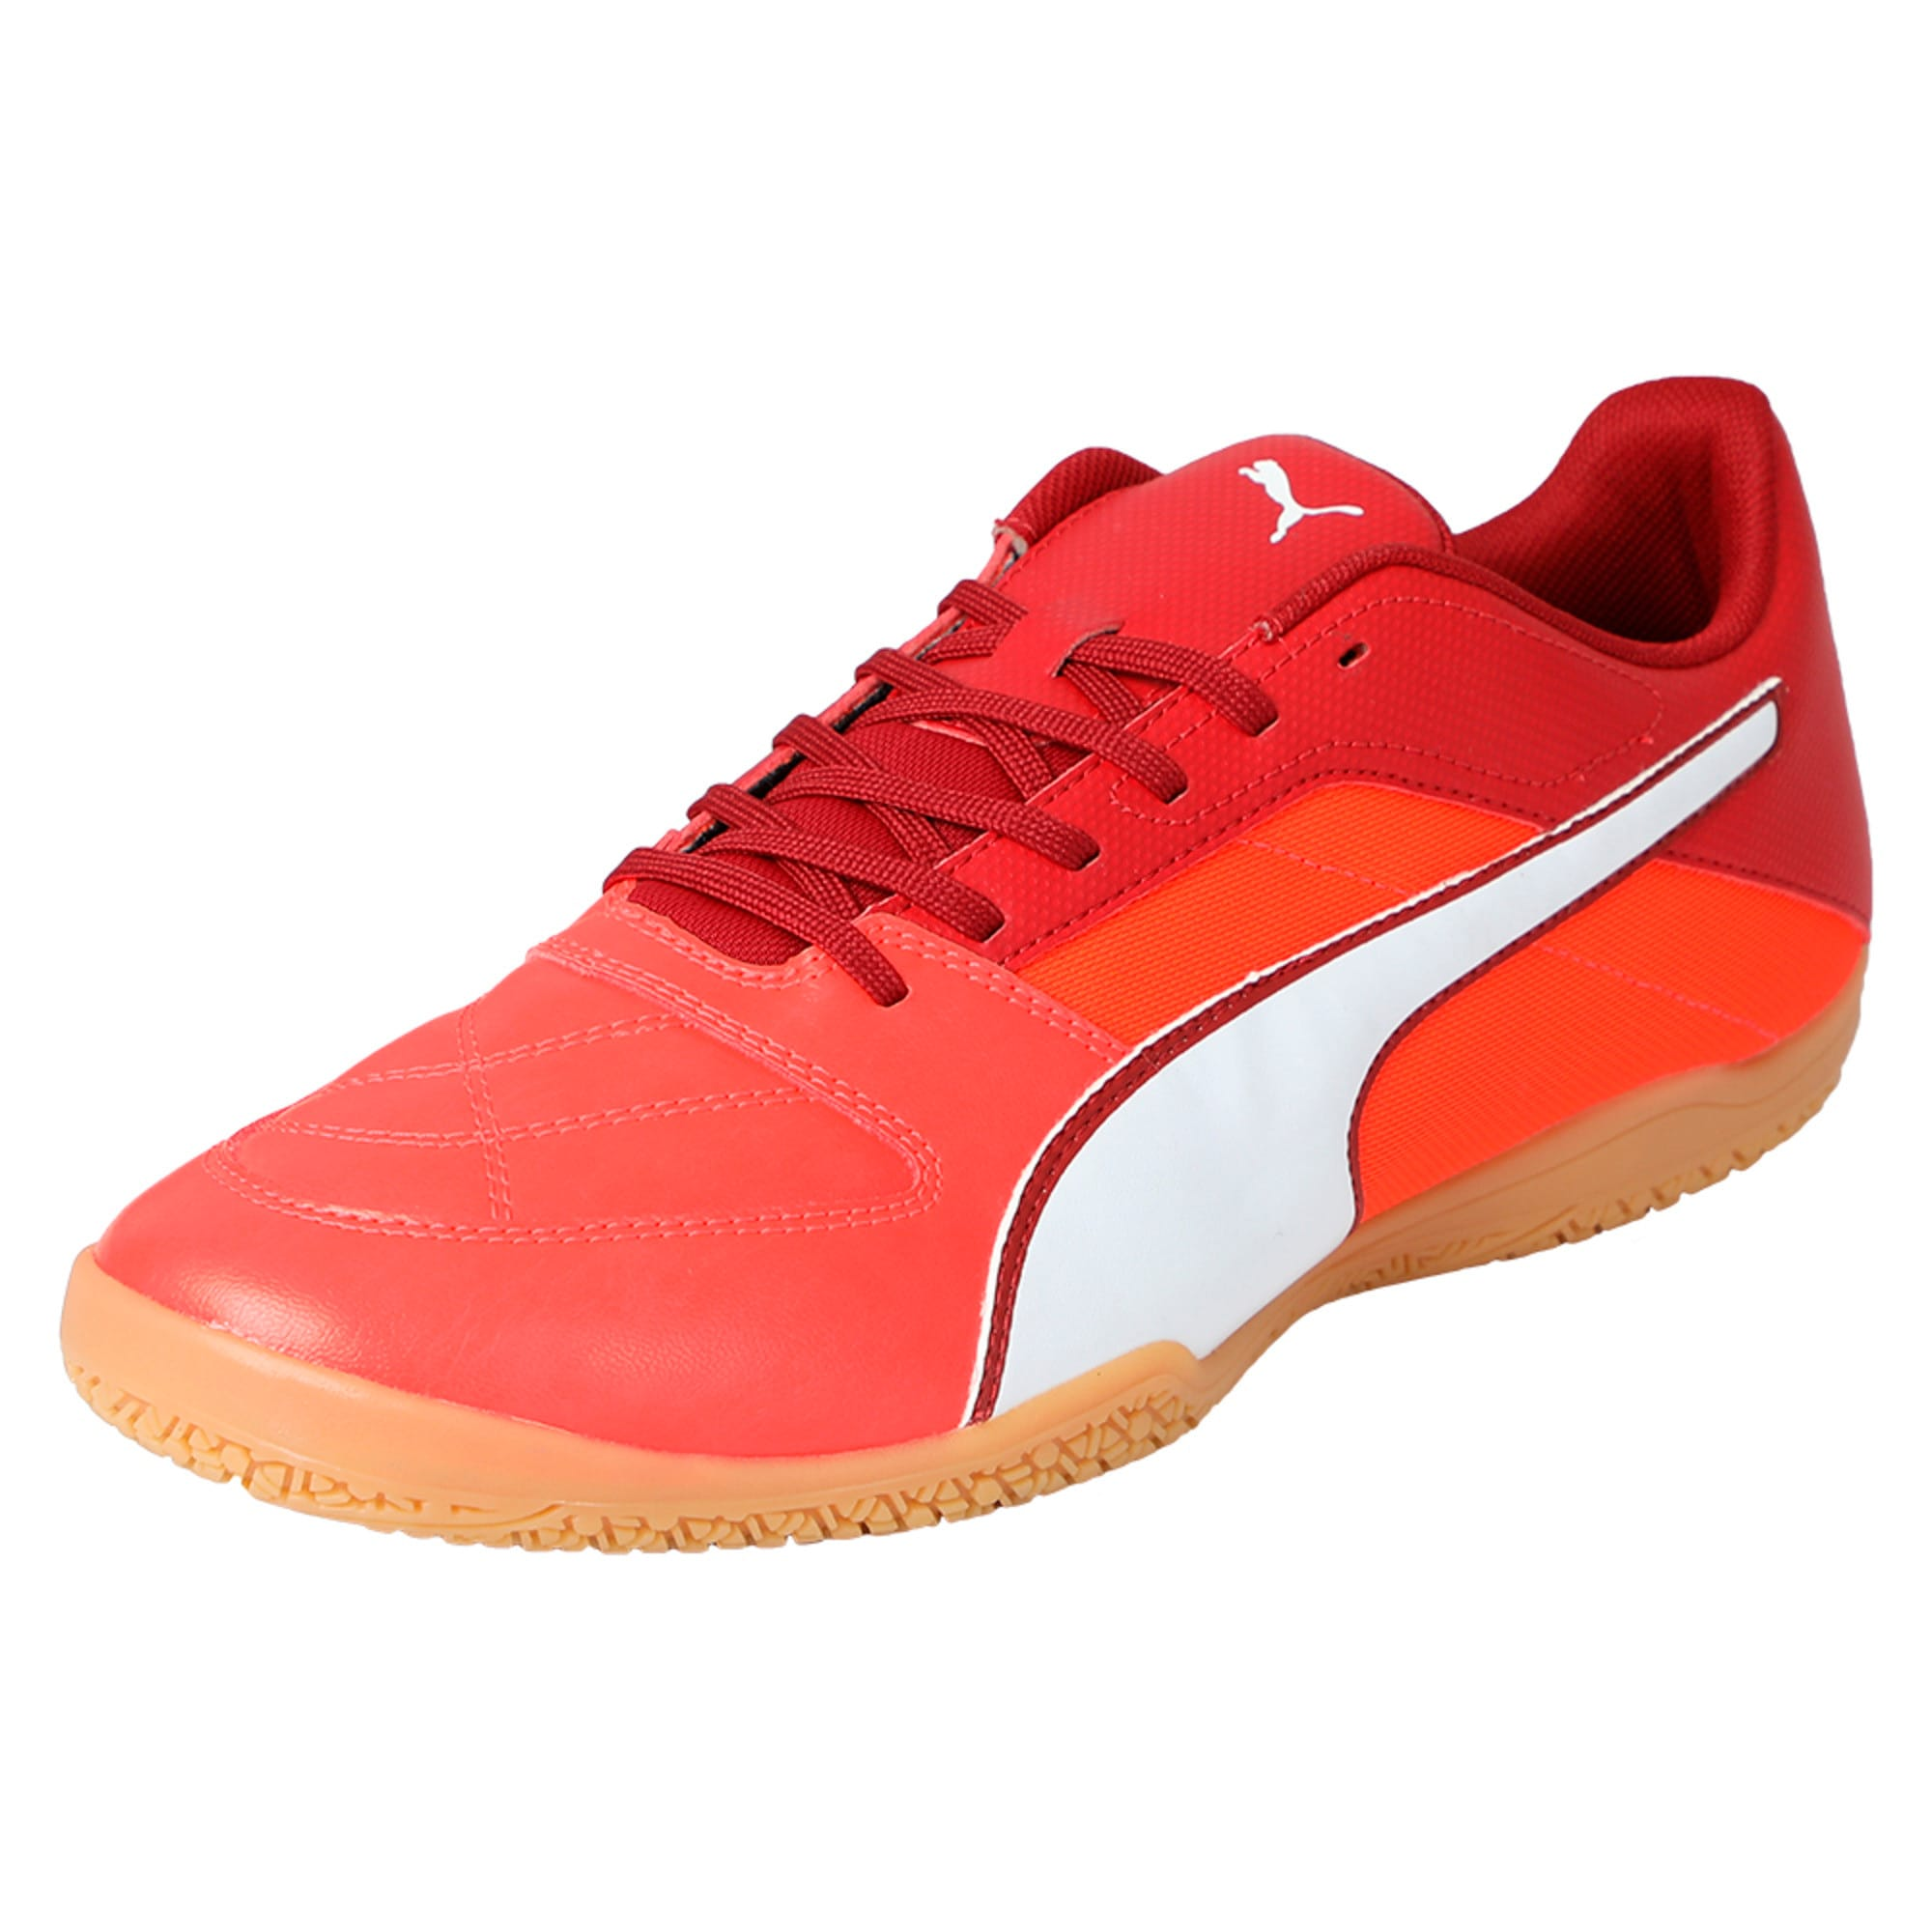 Thumbnail 1 of Gavetto II Men's Futsal Shoes, Red-White-Red Dahlia, medium-IND